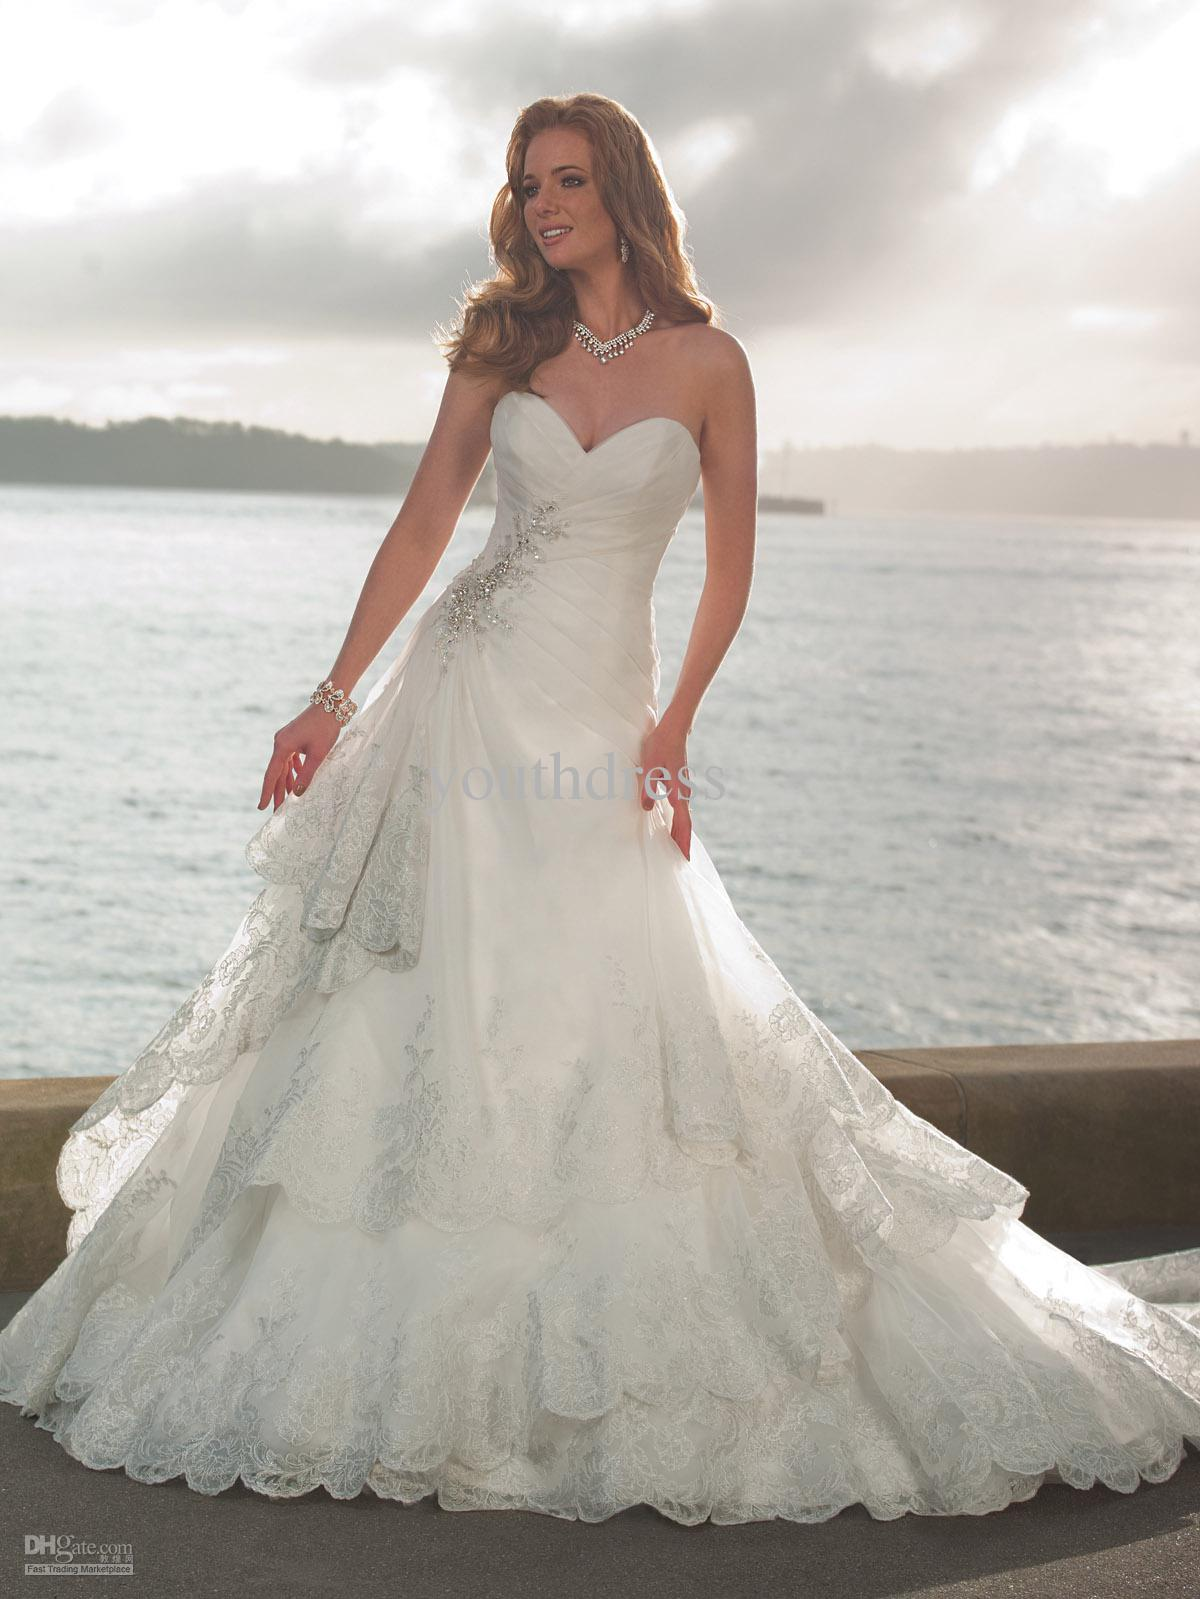 Selection of perfect beach wedding dresses steven wells blog for Best wedding dresses for beach weddings